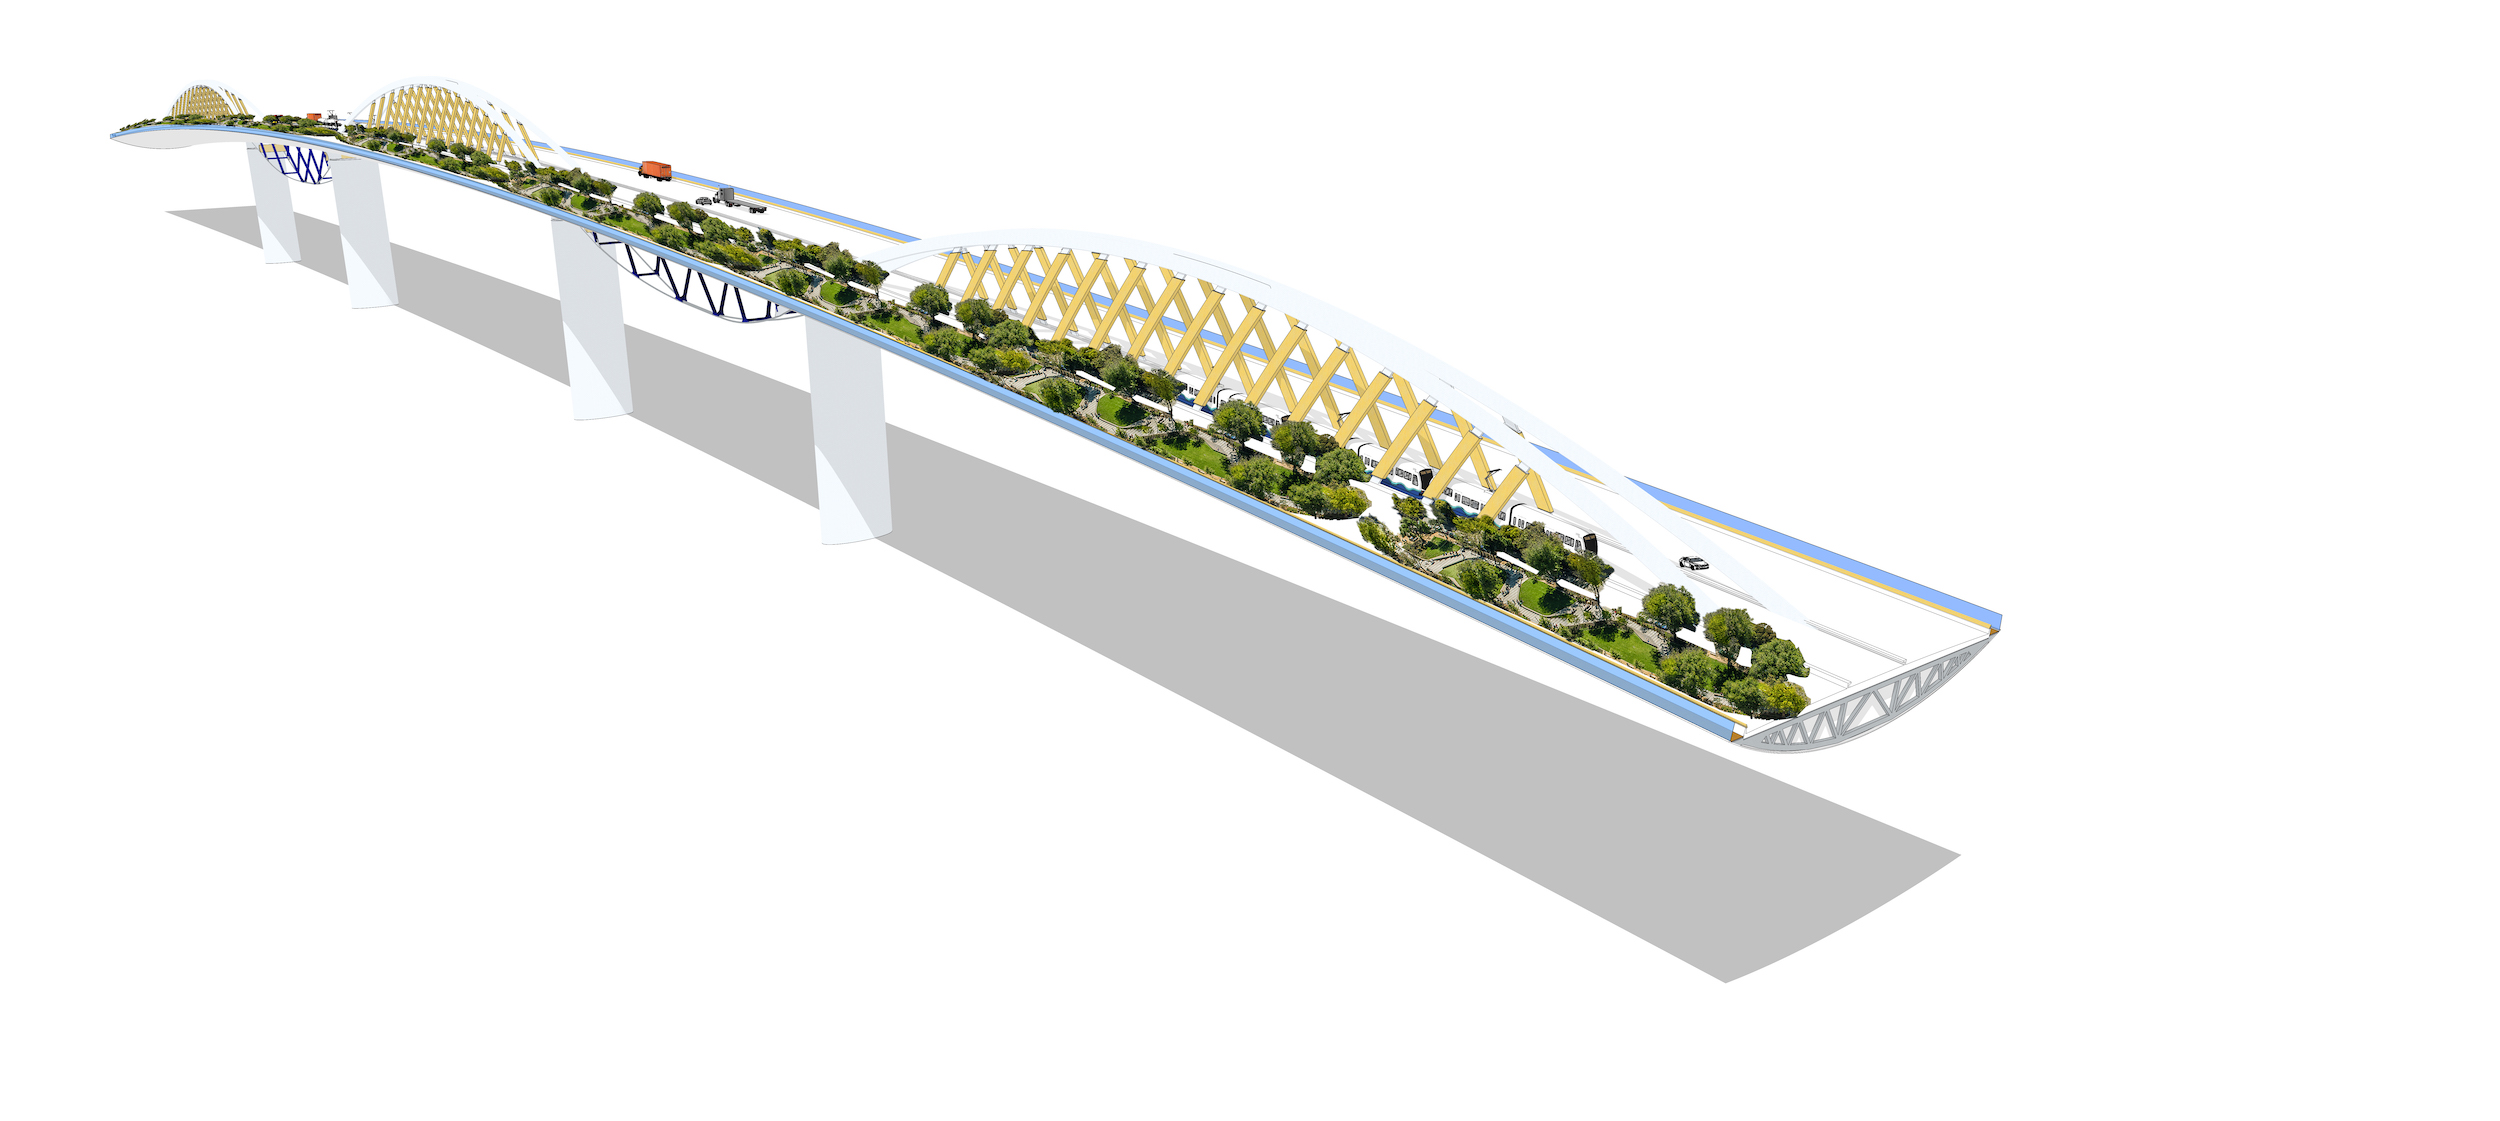 illustration of a proposed west seattle bridge replacement with a park element